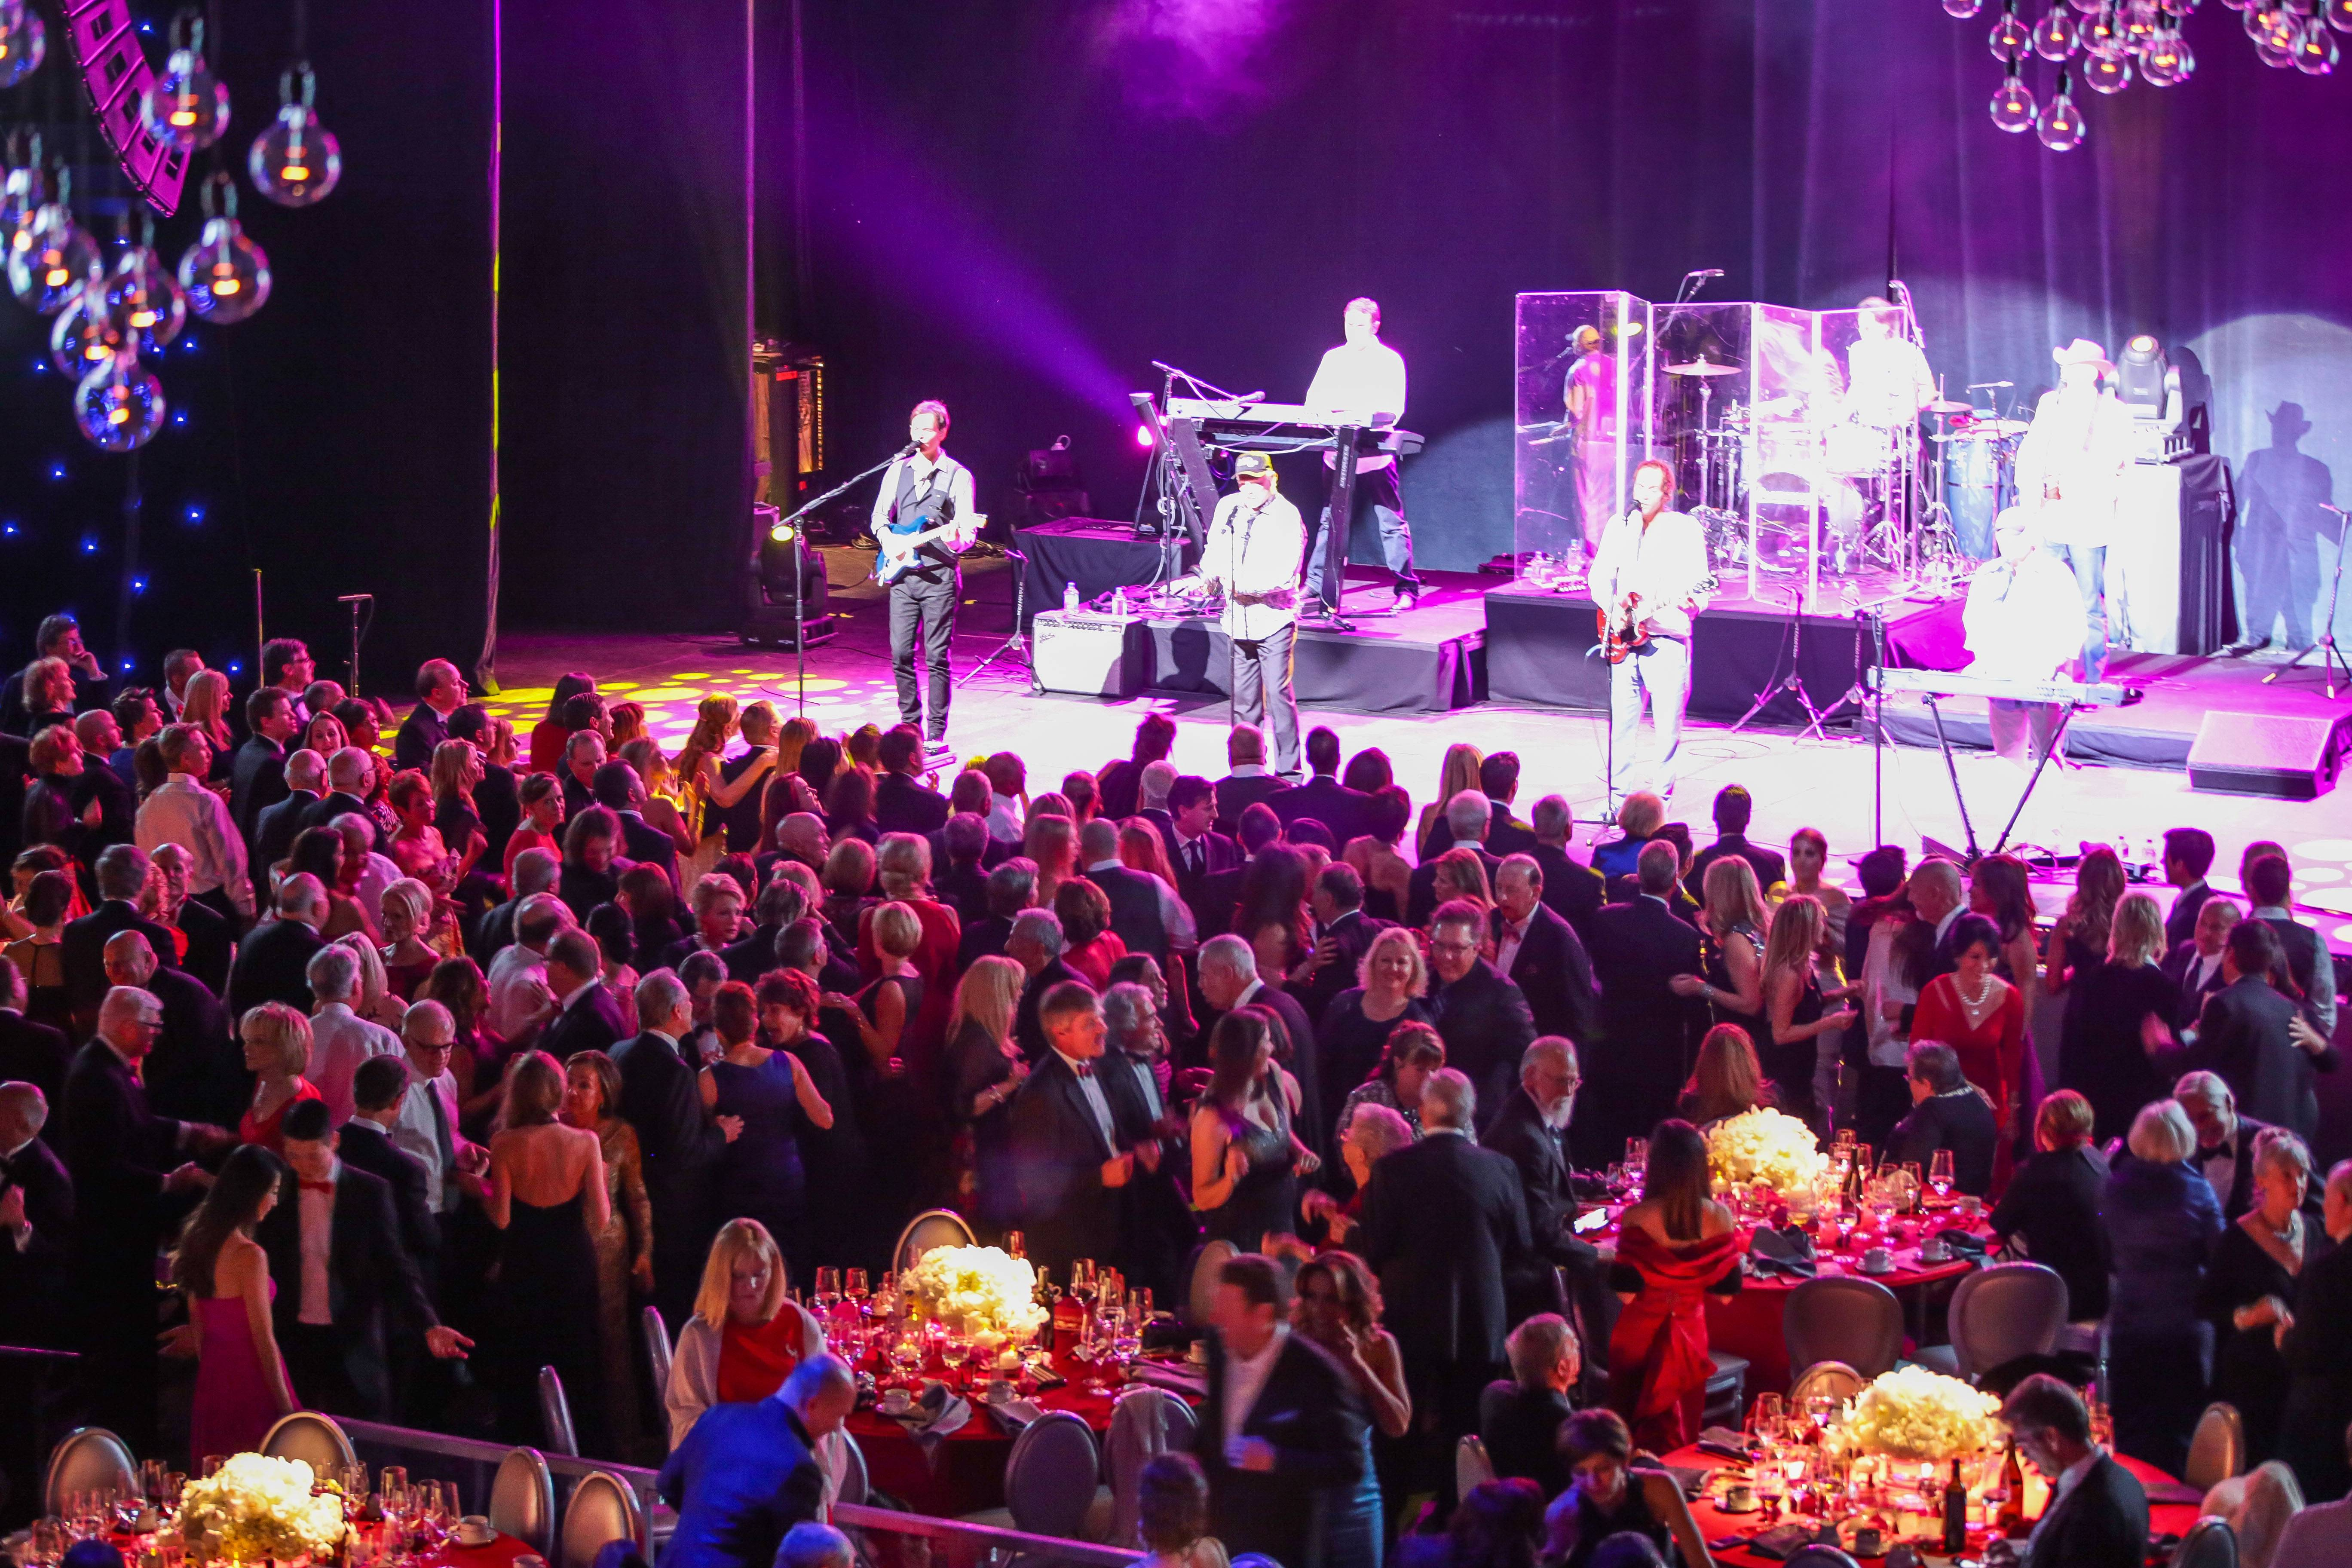 Candlelight Concert 2013 -The Beach Boys performing - phto by Joesan Diche (51)